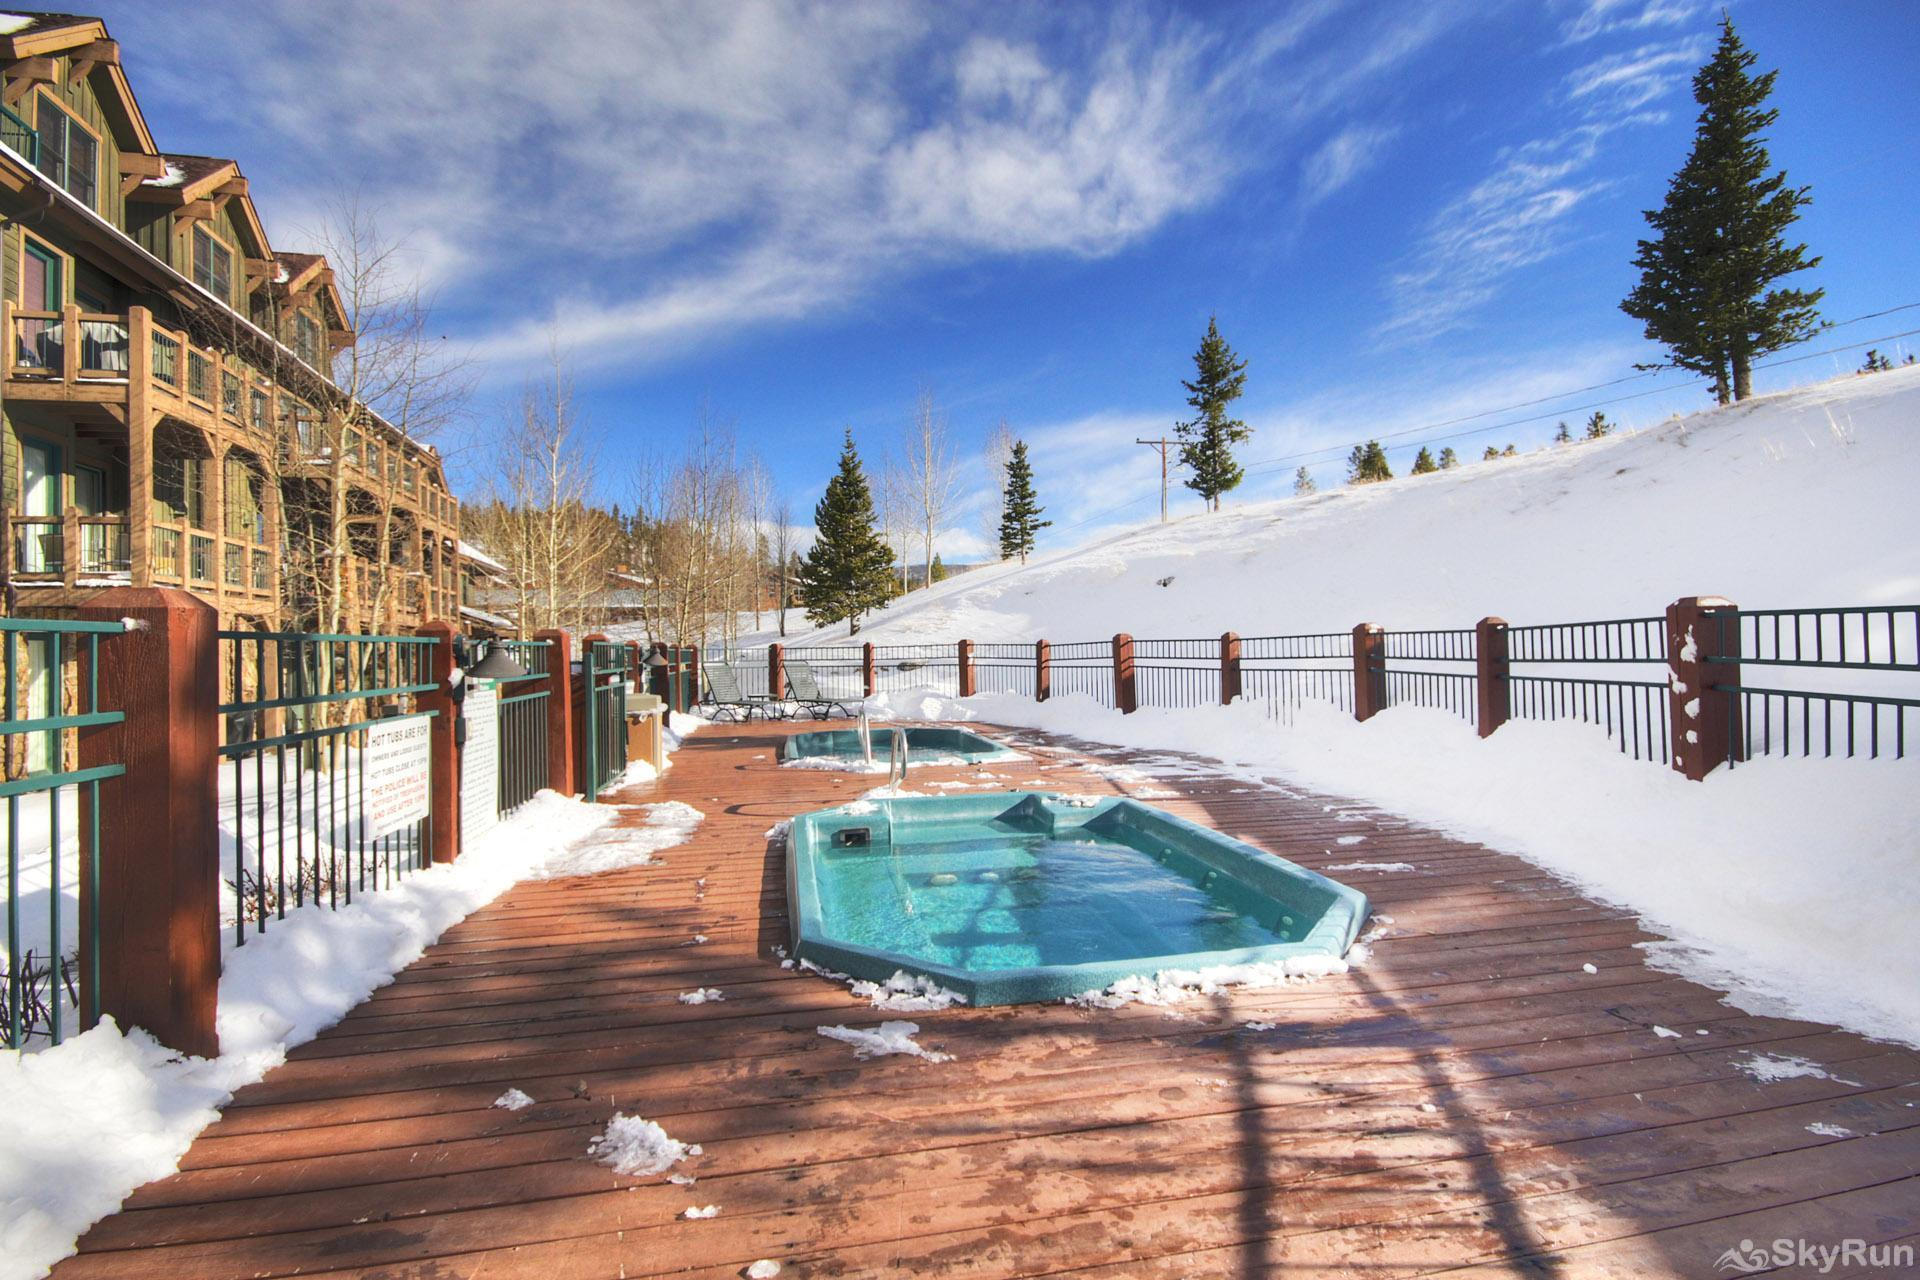 Highland Greens Lodge 210 Outdoor Shared Hot Tub